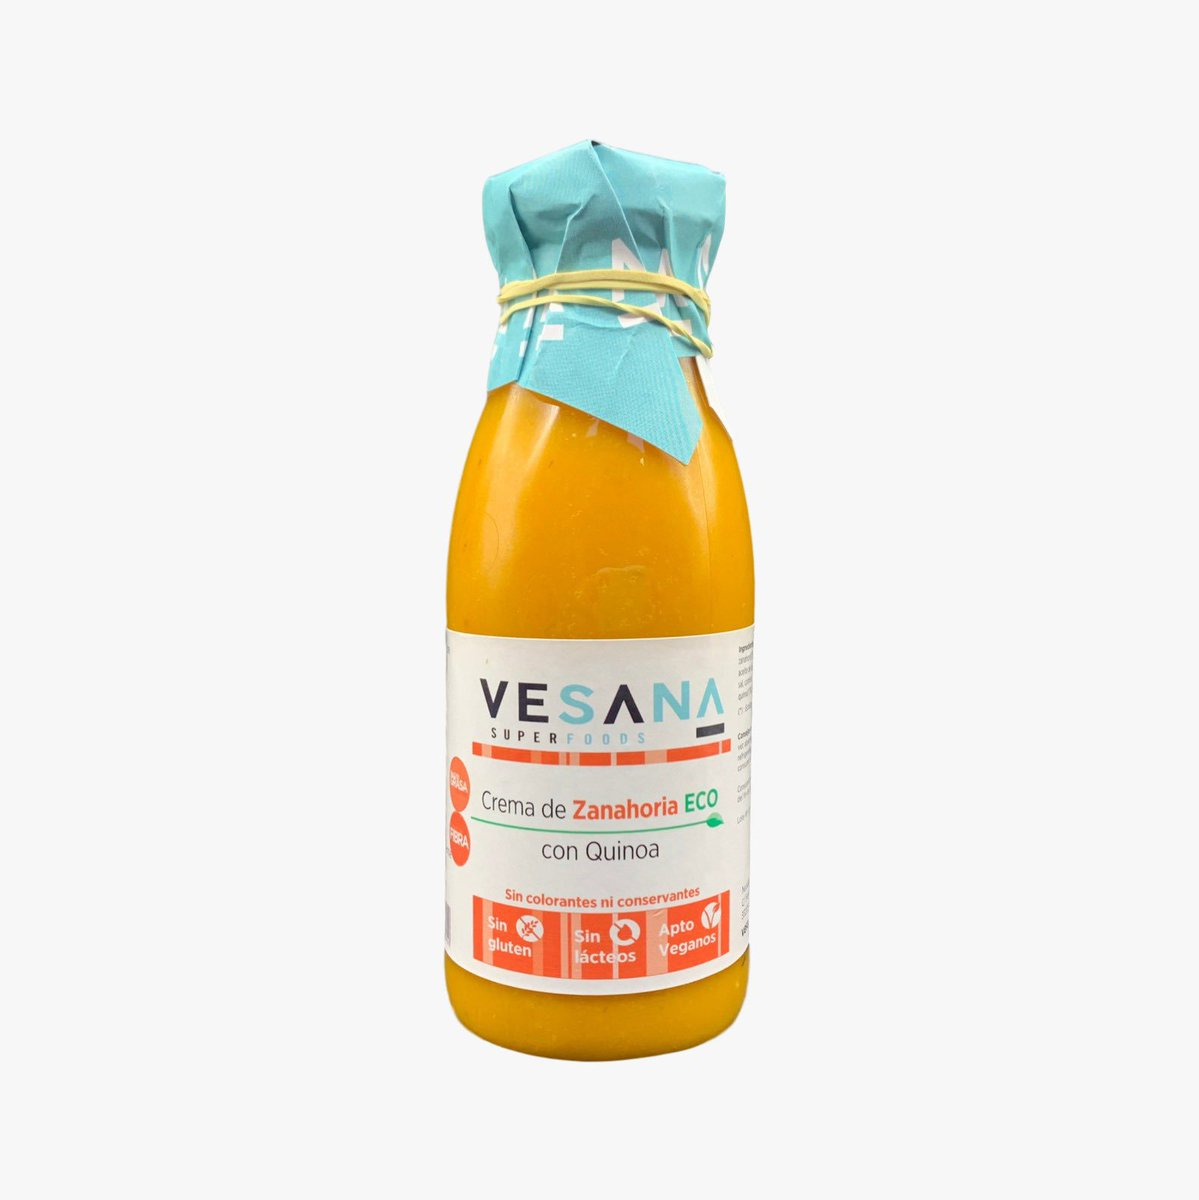 Vesana Superfoods